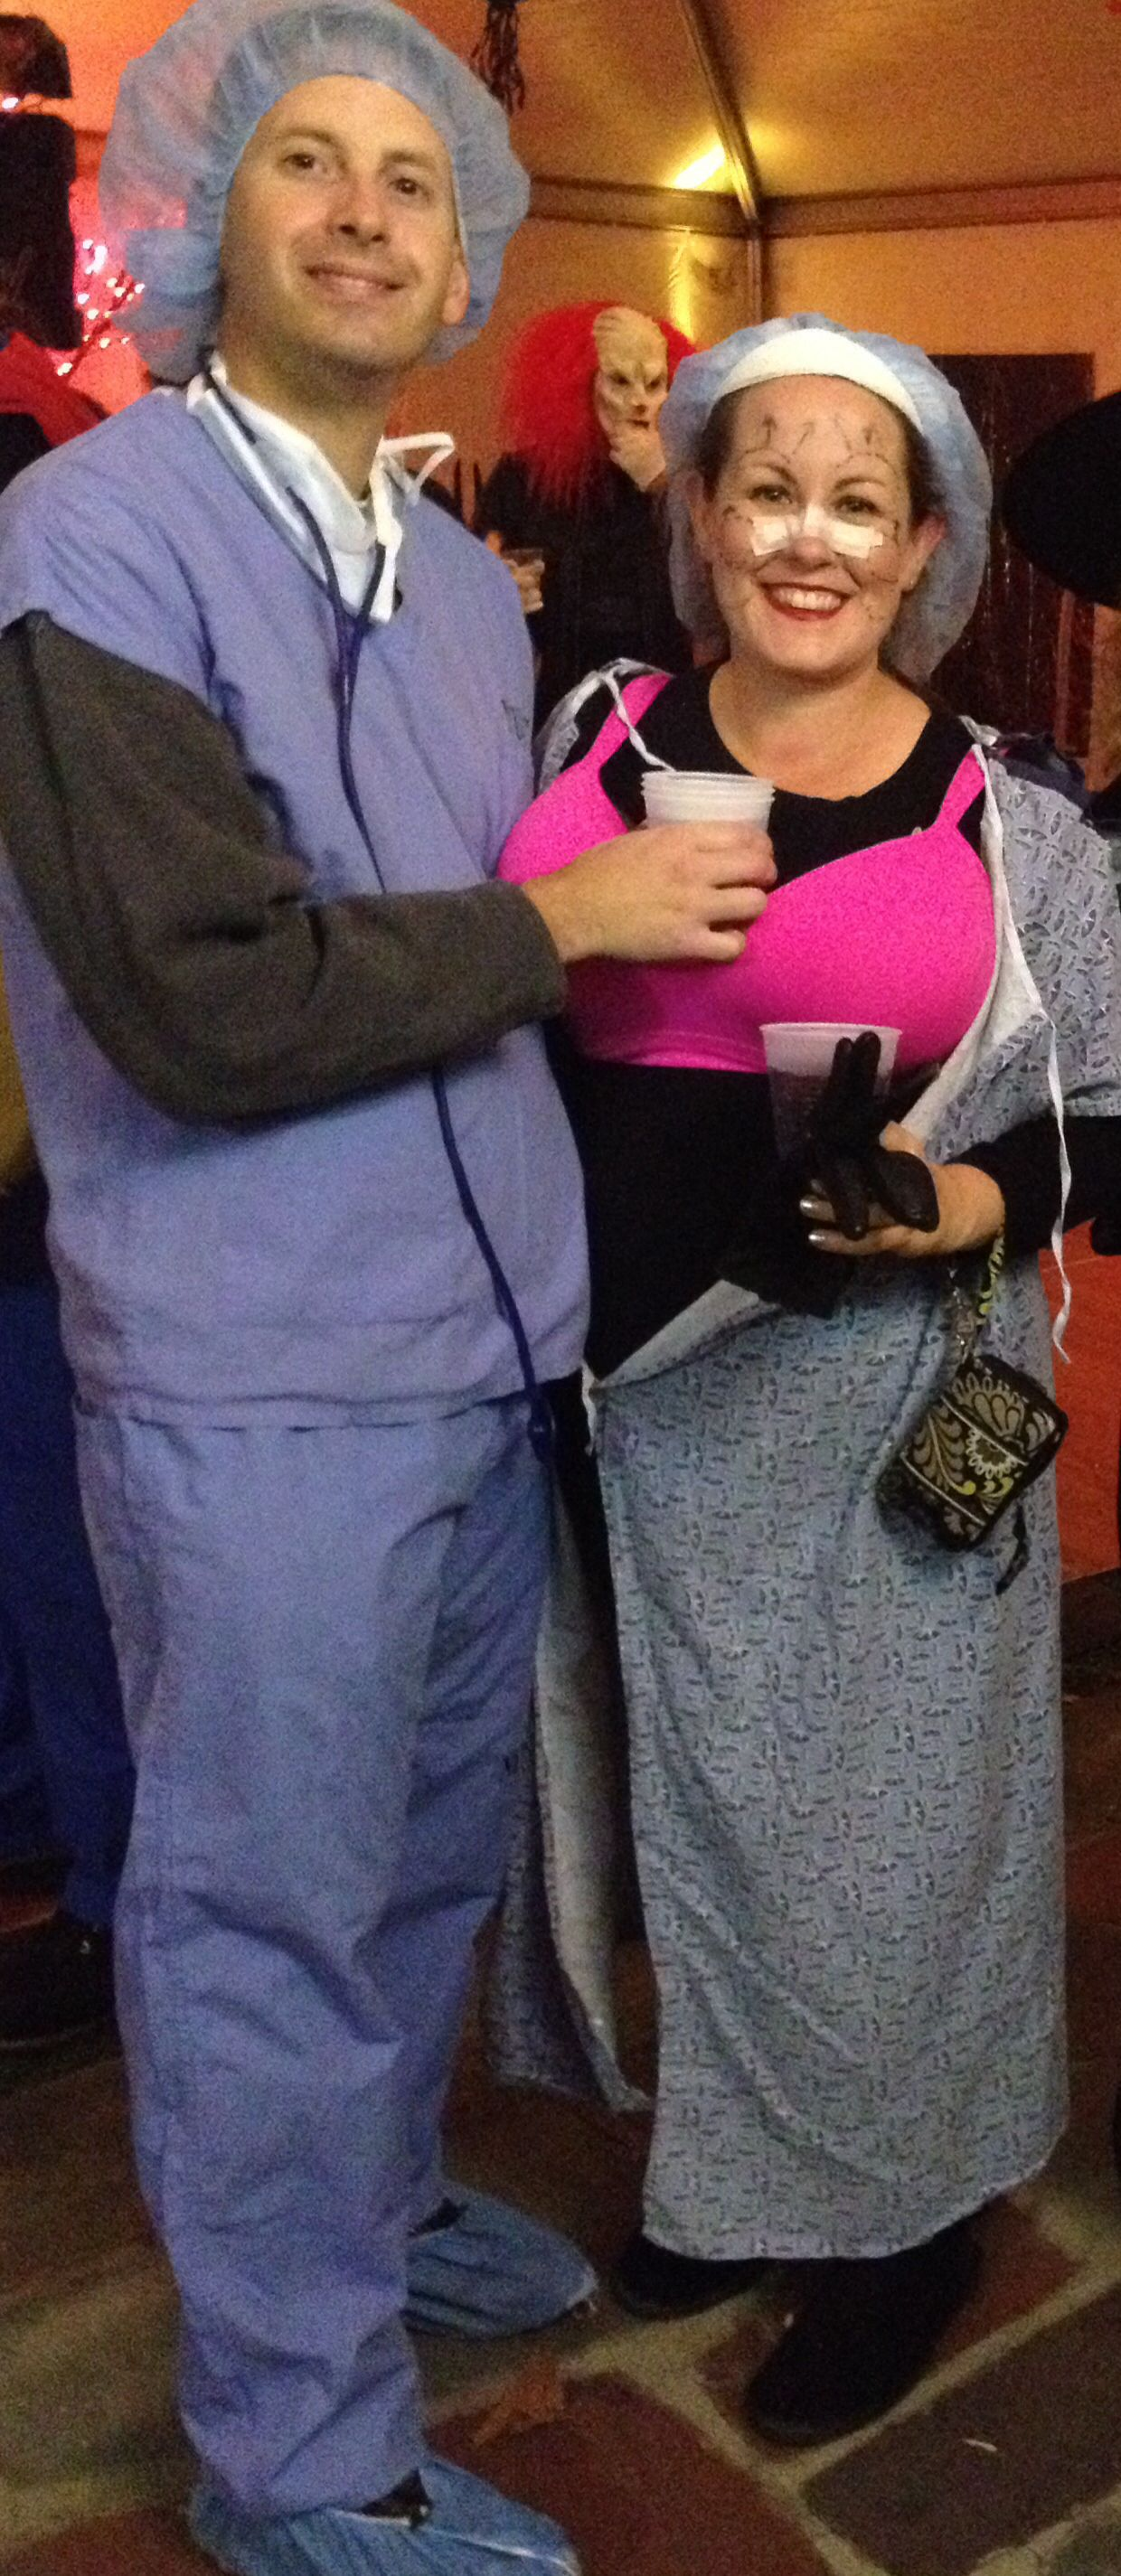 Halloween Costume Couple Plastic Surgeon And Patient Halloween